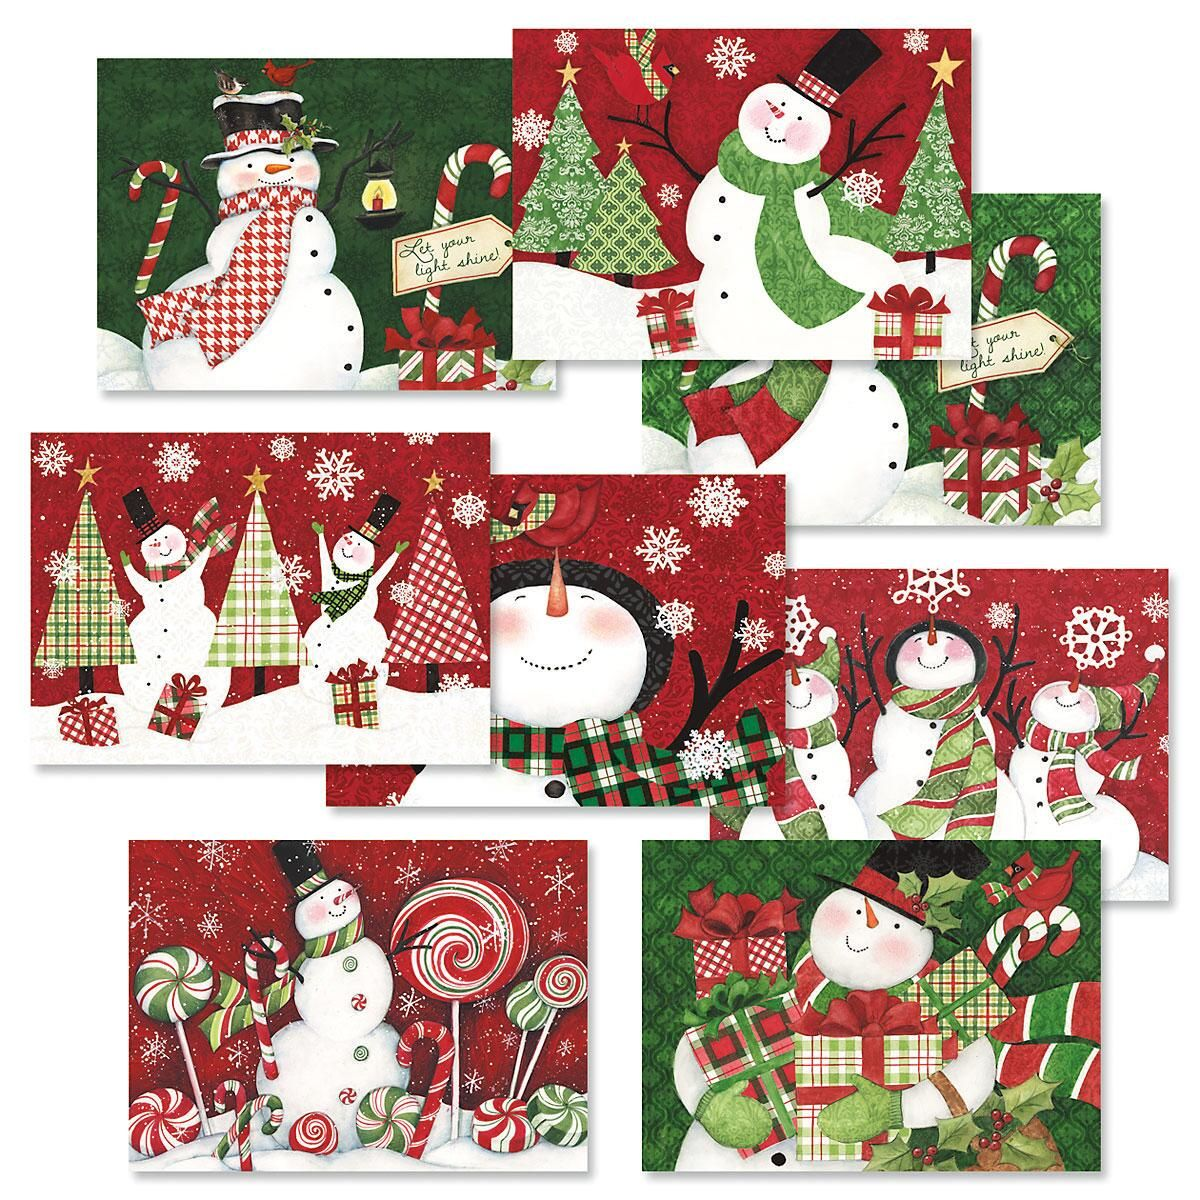 Snowman Christmas Cards Value Pack - Christmas Card Value Packs ...